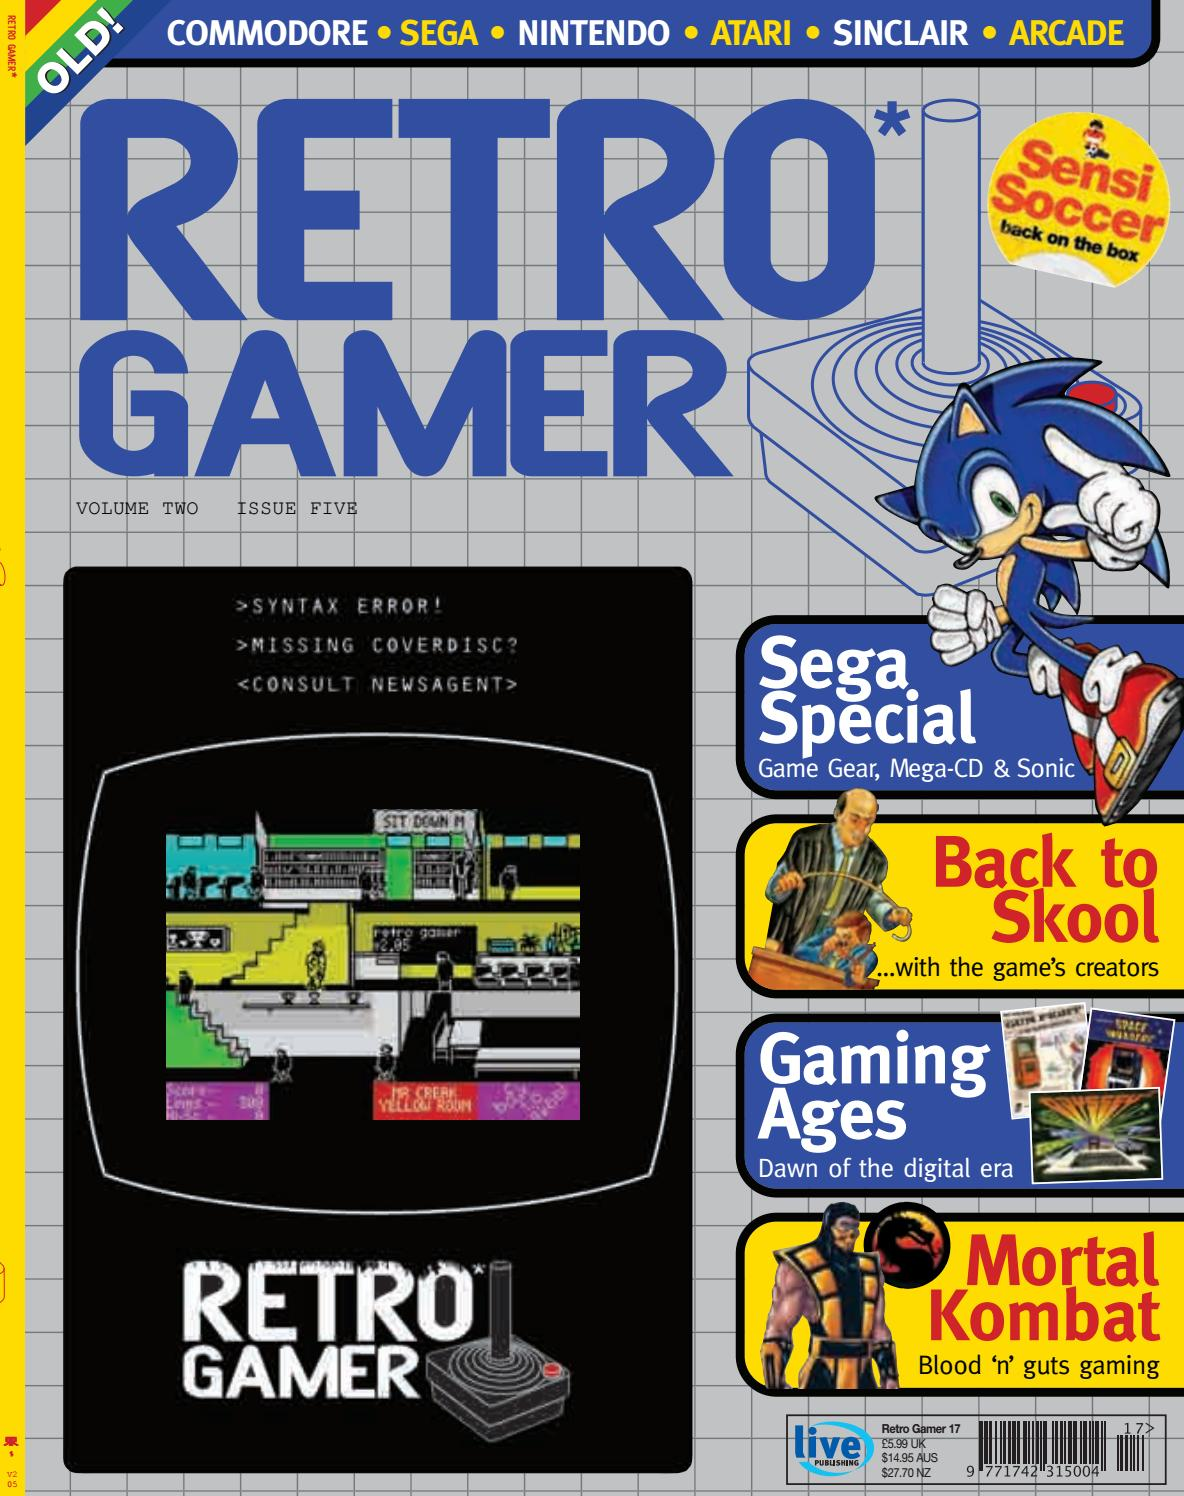 Retro Gamer nº 017 by Revistas Clássicas de Games - issuu